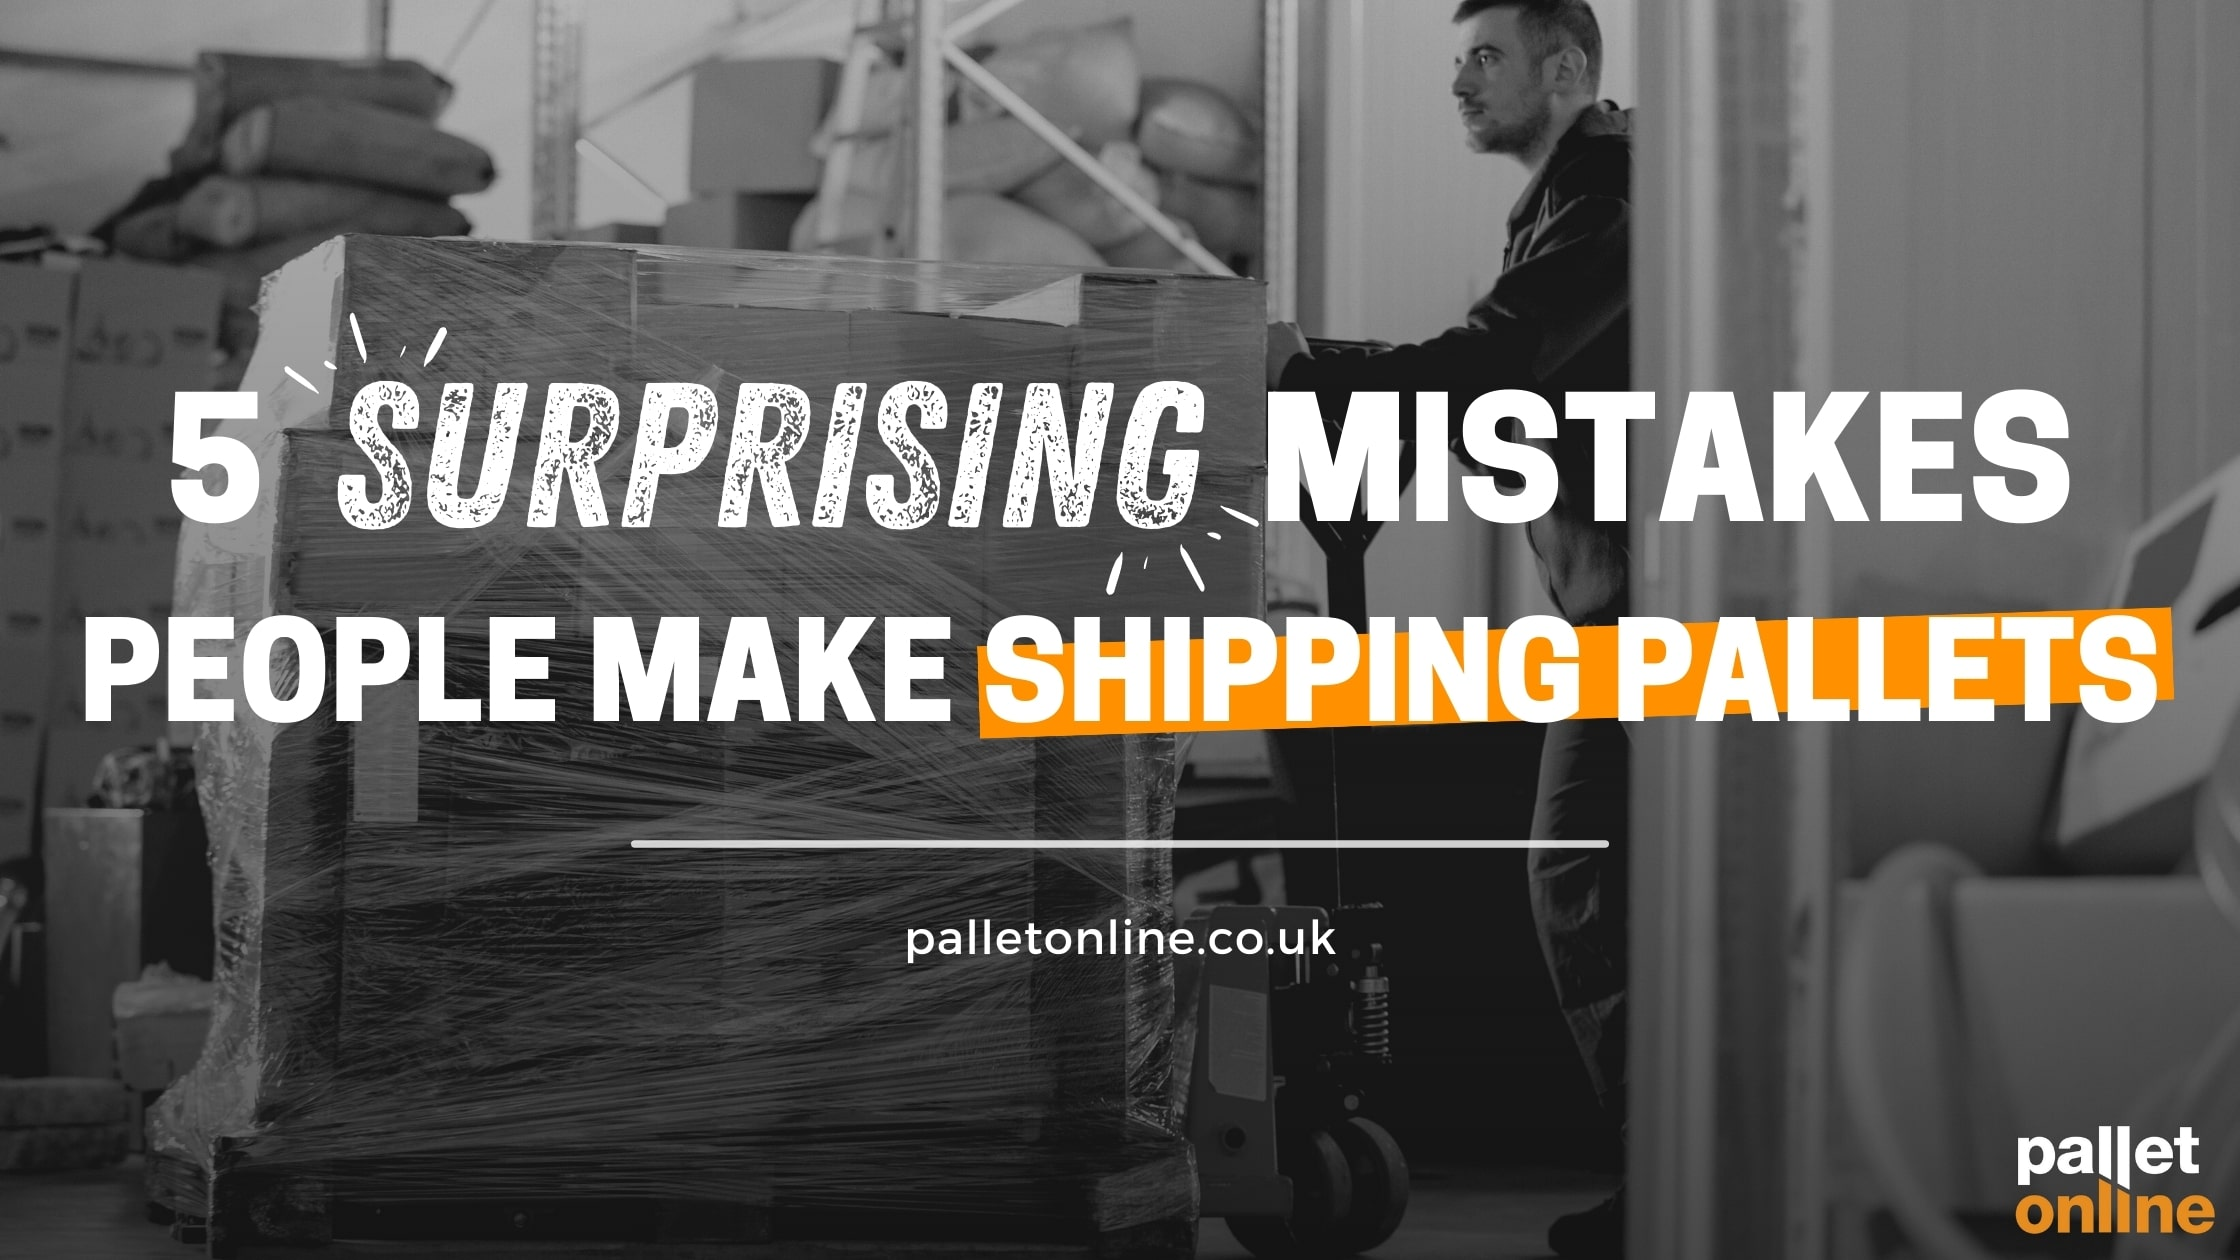 5 Surprising Mistakes People Make Shipping Pallets